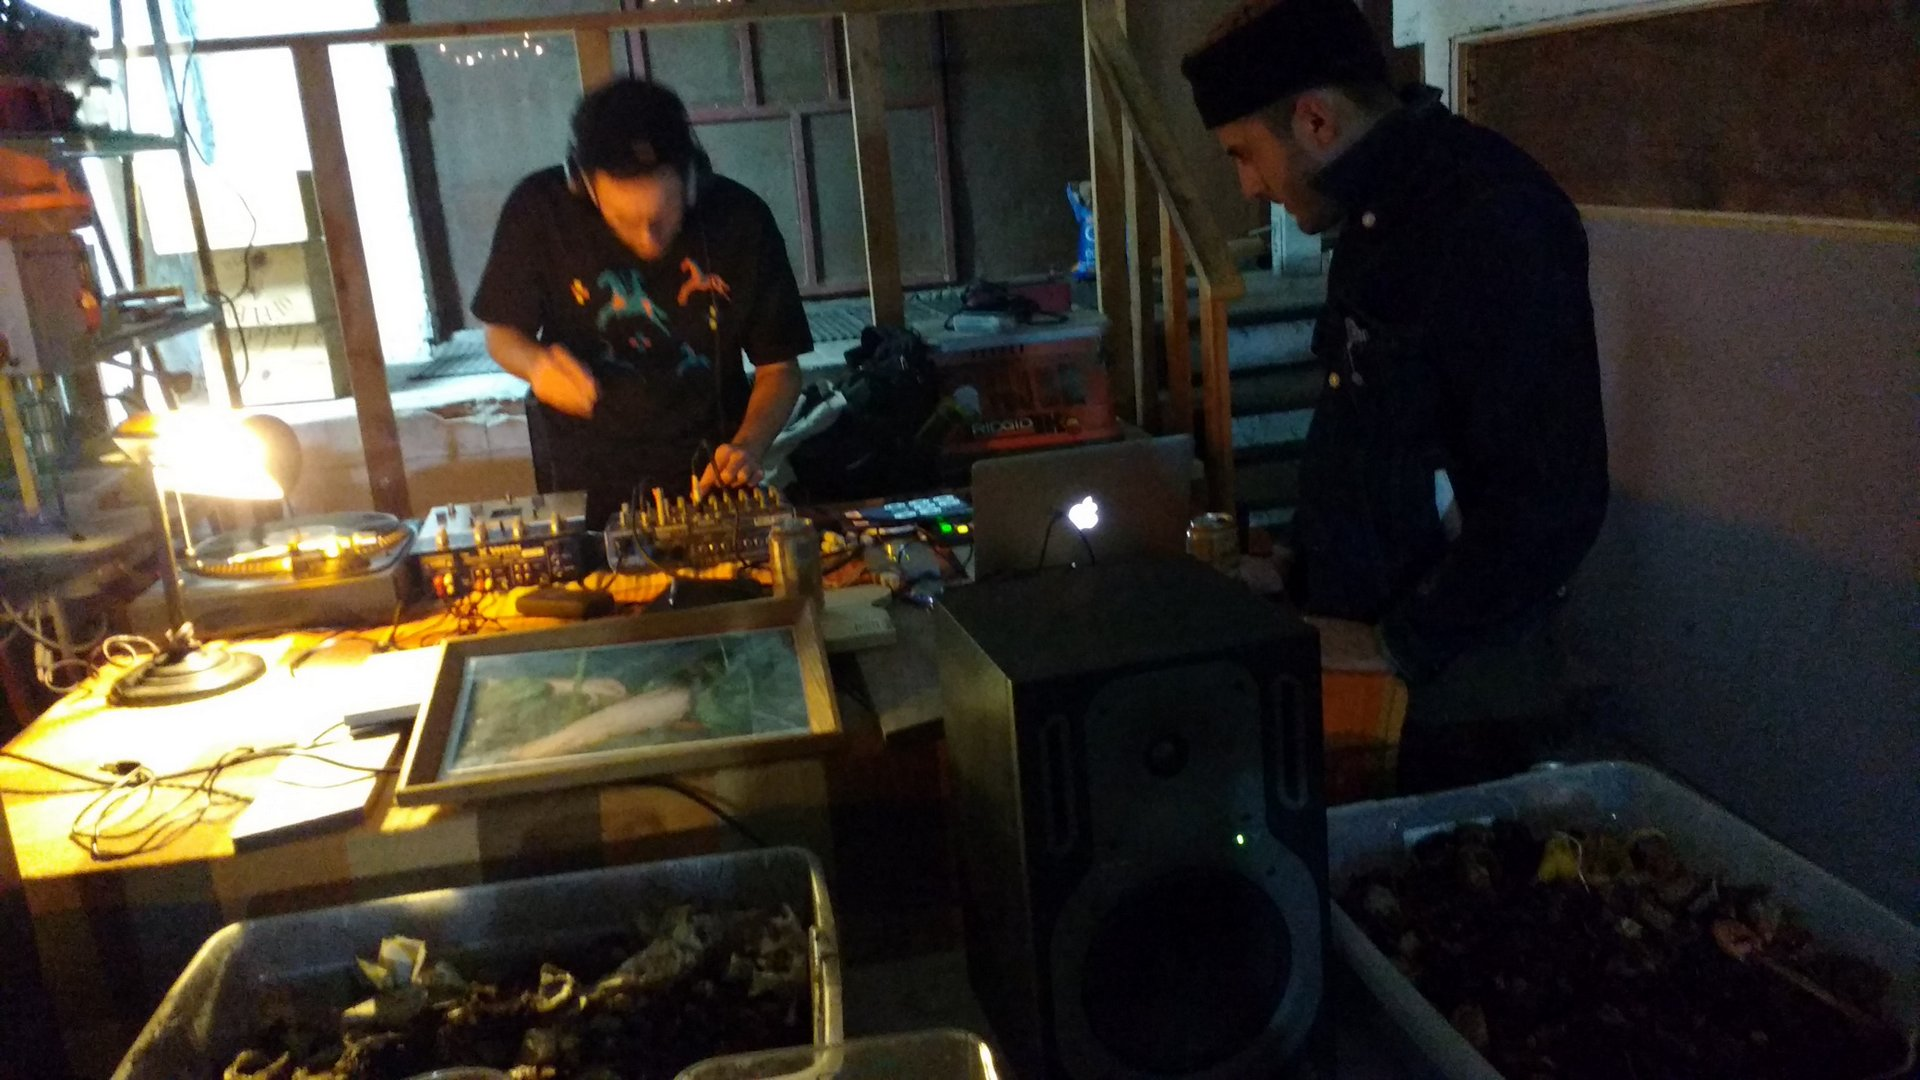 DJ set at Dirtmaking event